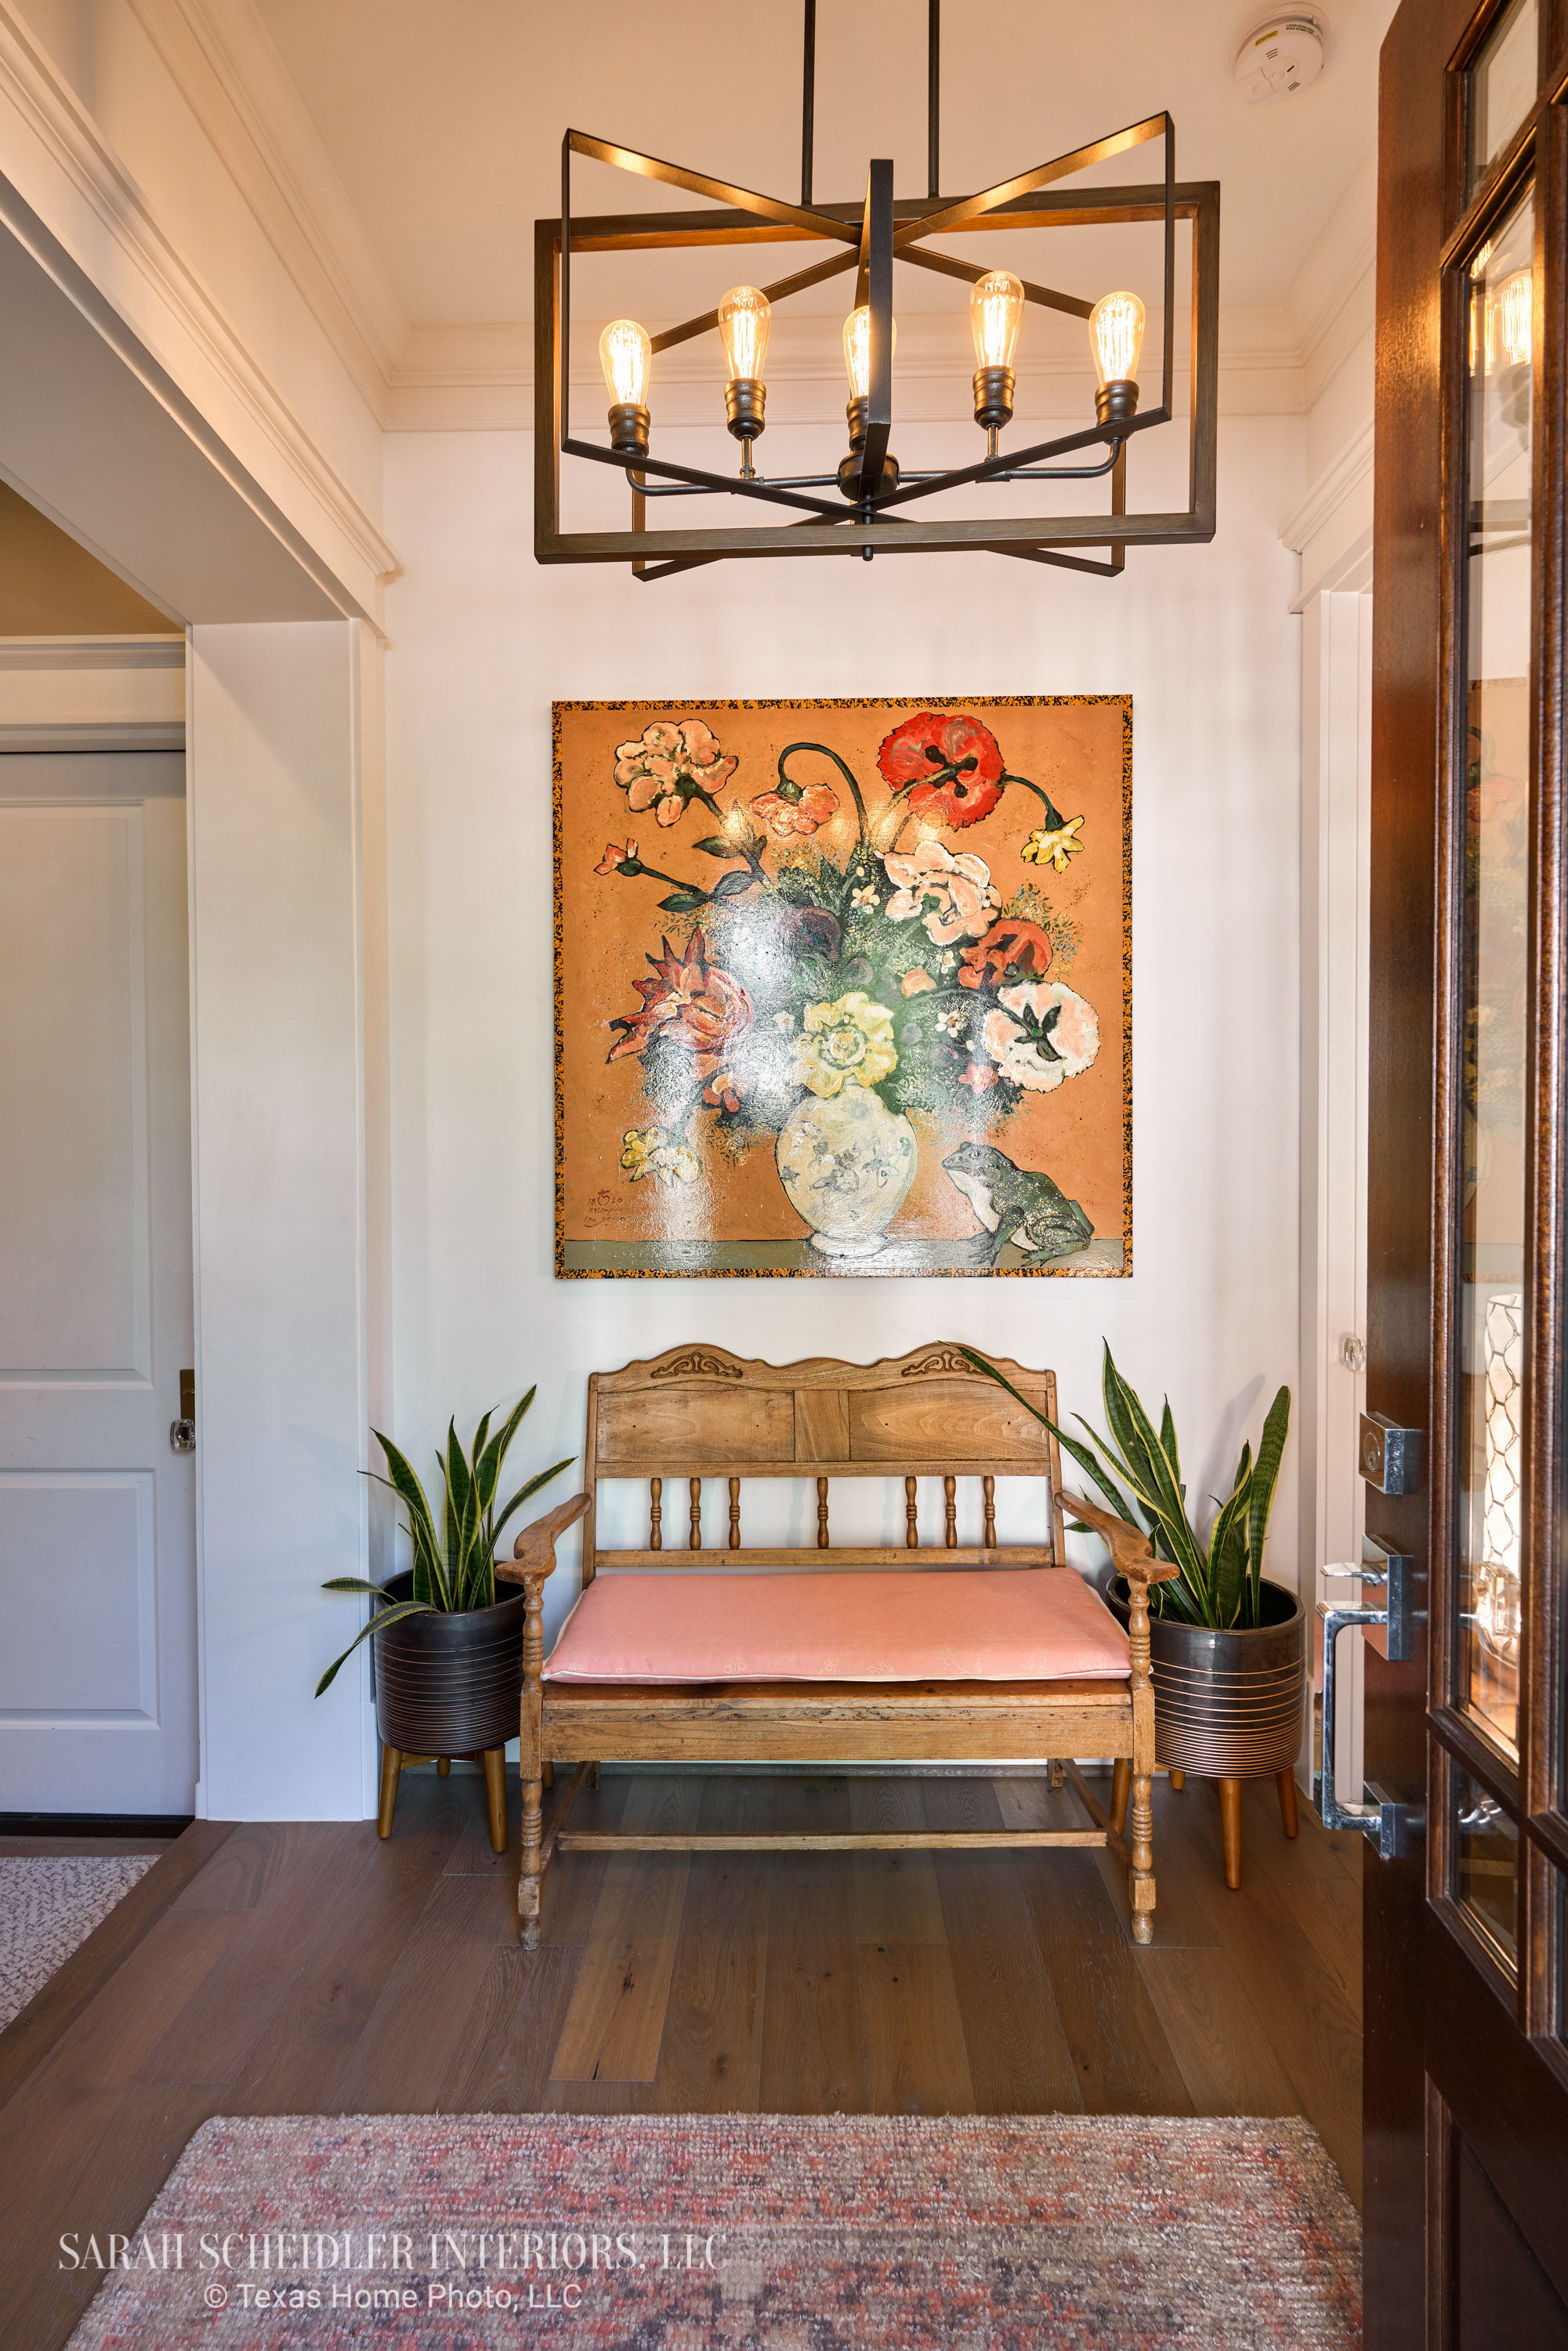 Entryway Design with Modern Light Fixture, Colorful Art, Antique Settee, and Potted Greenery